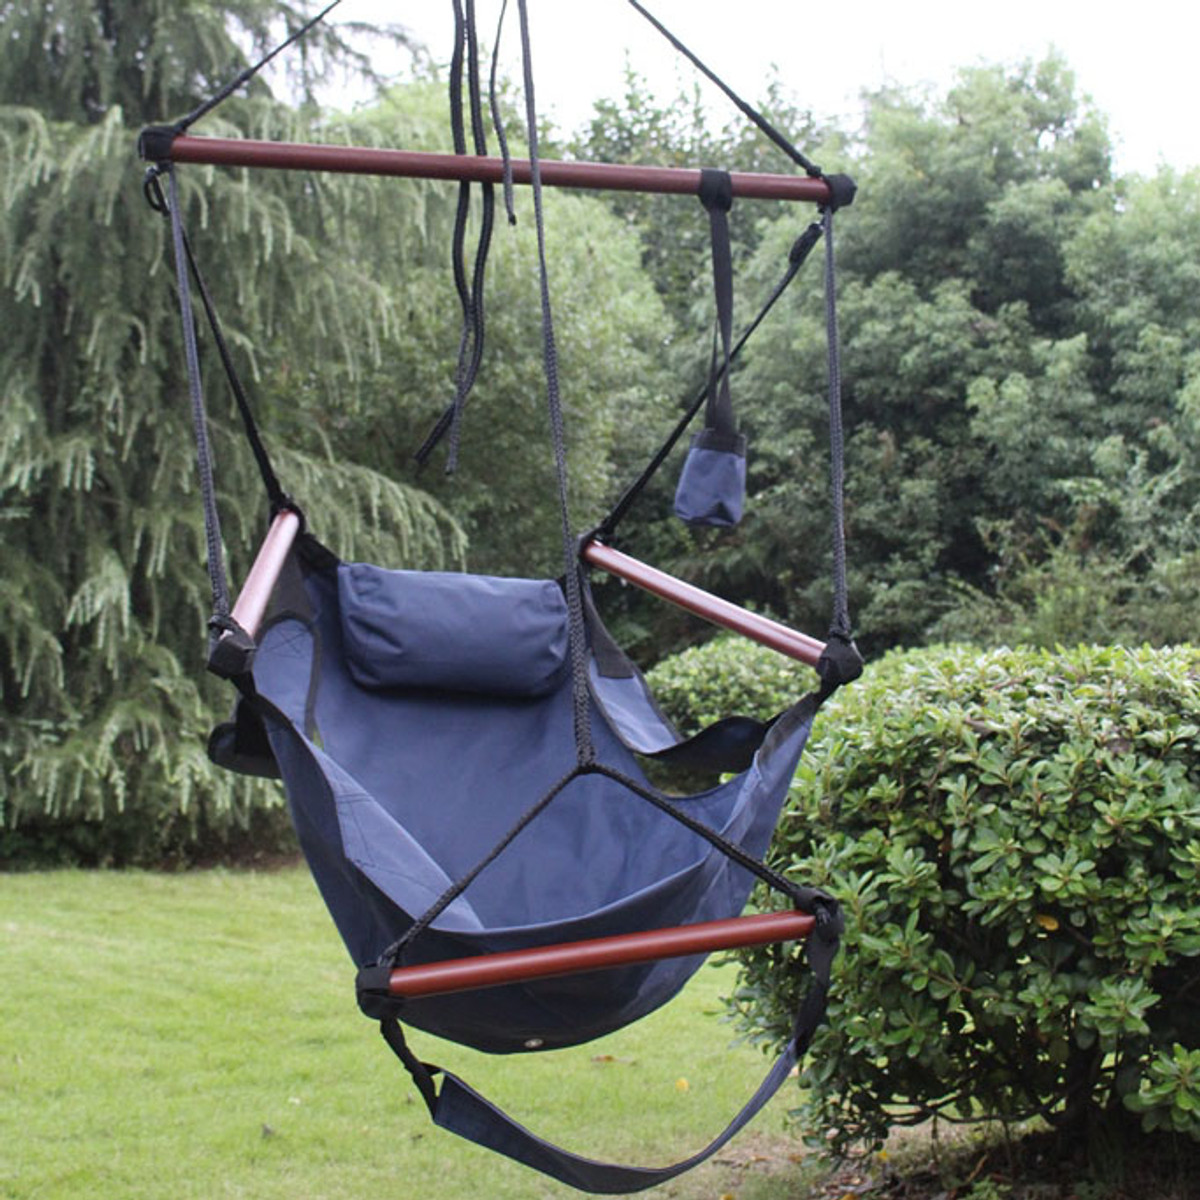 Sunnydaze Deluxe Hanging Hammock Air Chair W C Stand